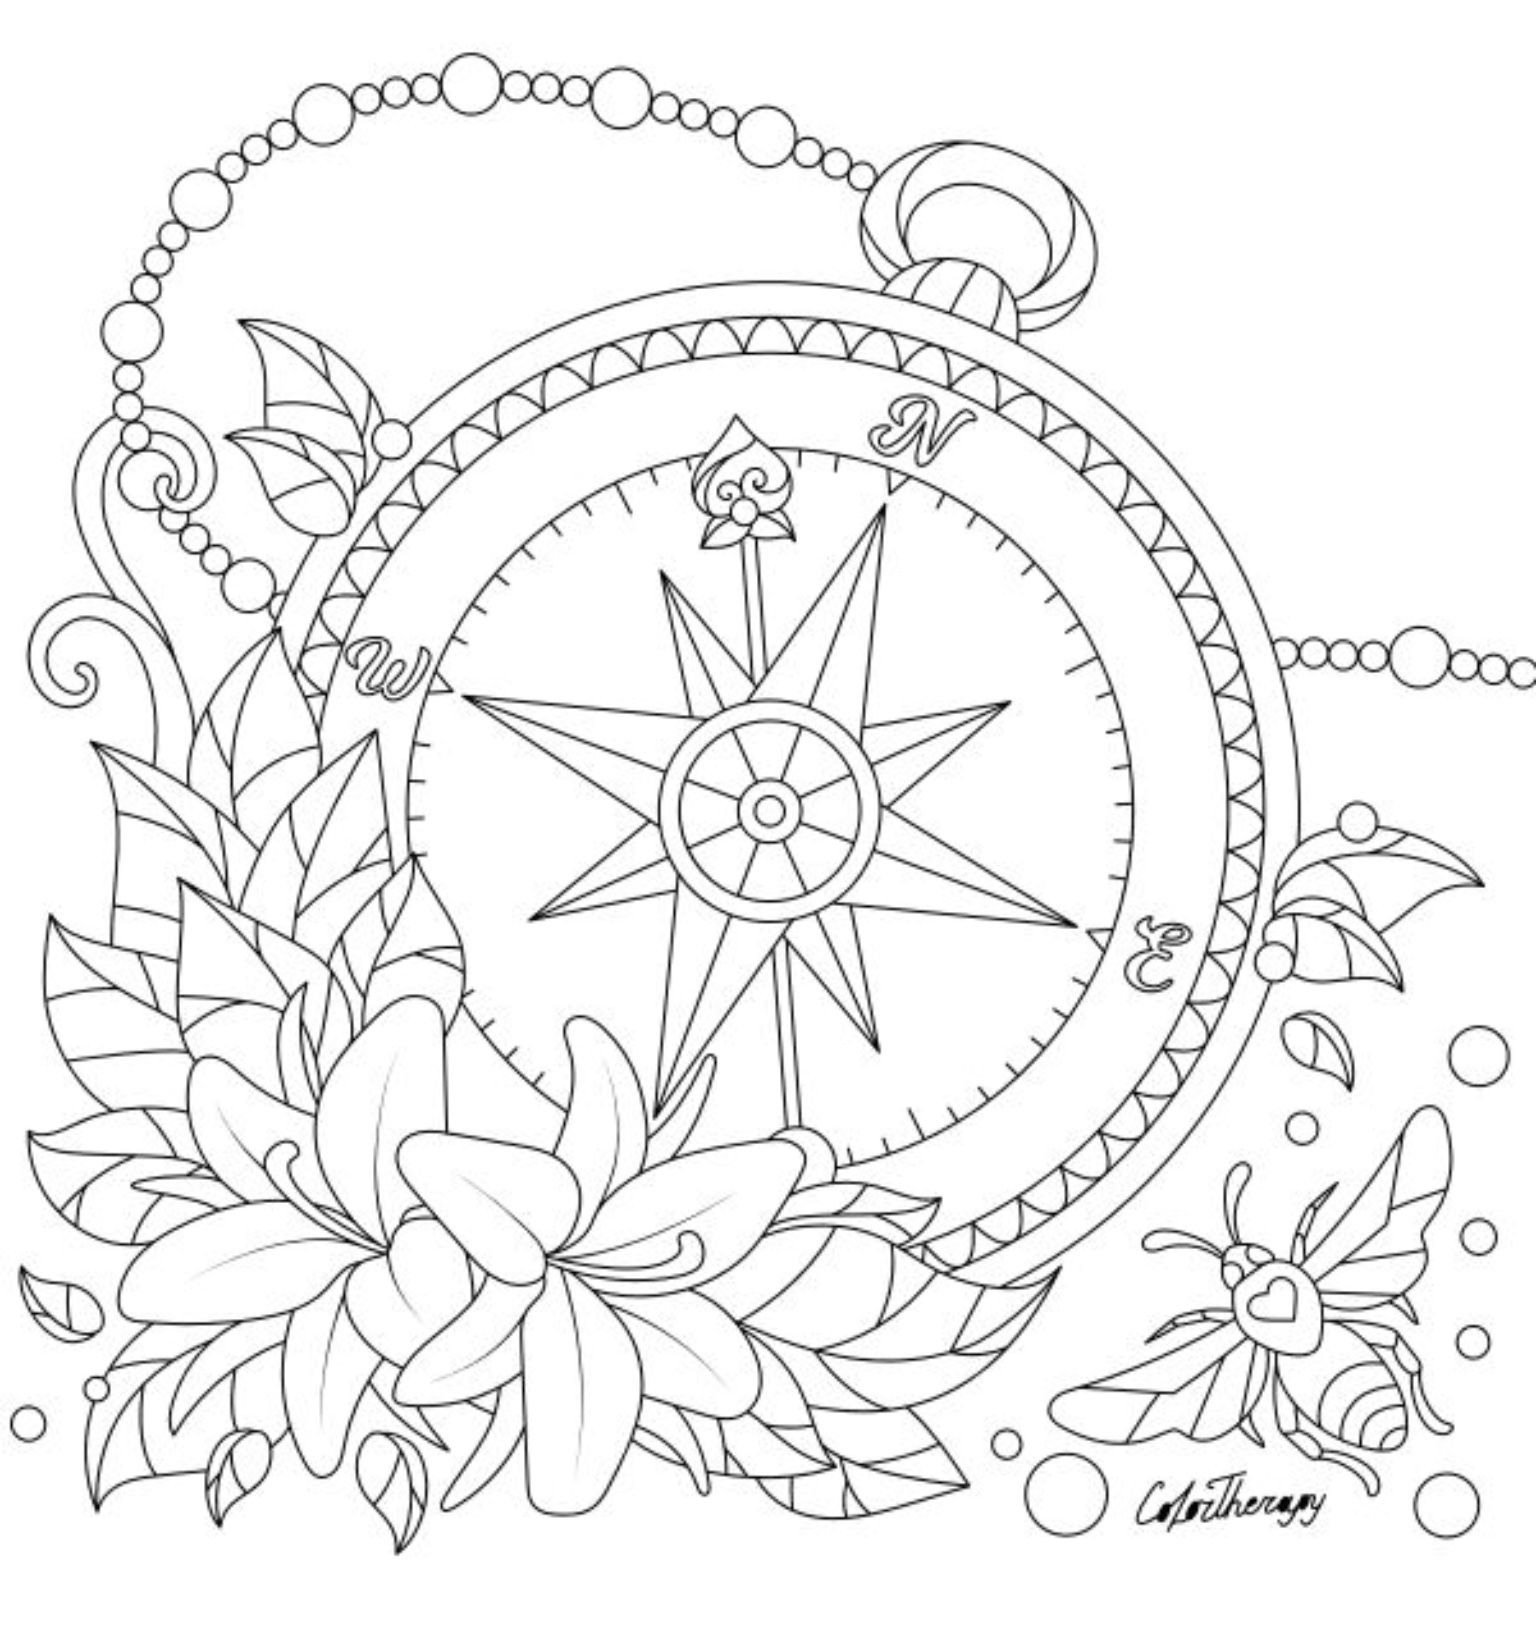 Compass Coloring Page Coloring Pages Mandala Coloring Pages Coloring Books